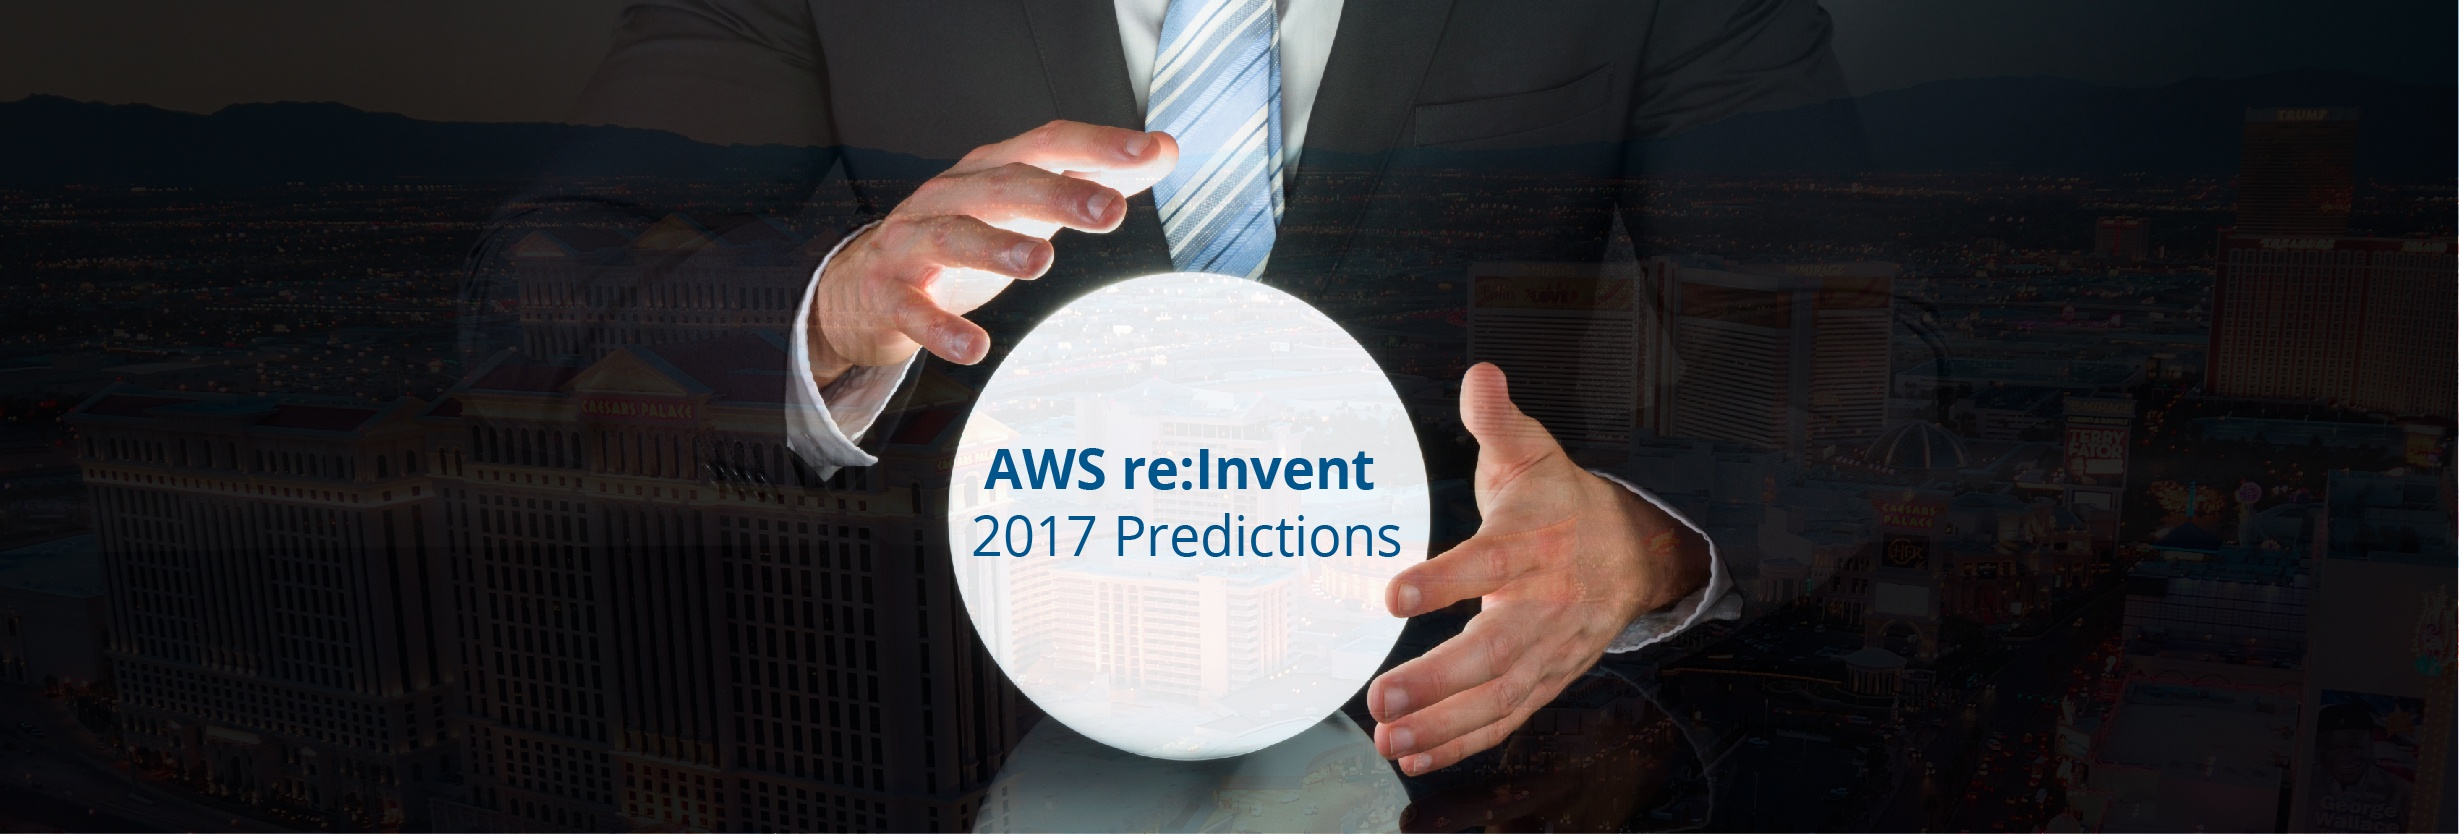 AWS re:Invent 2017: 5 Predictions For The Cloud's Biggest Show